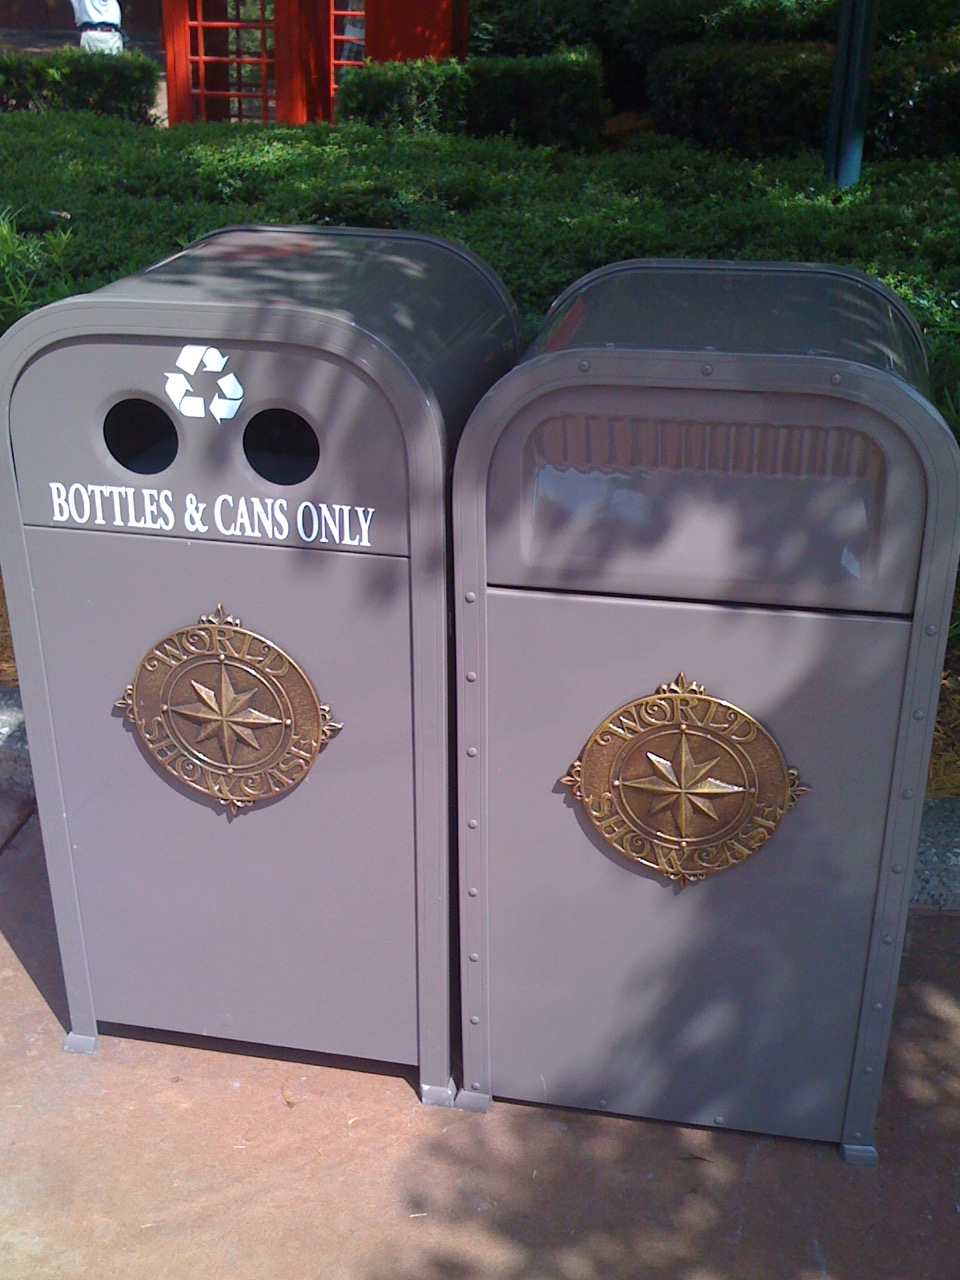 Trash receptacles at World Showcase, Epcot. Photo by J. Jeff Kober.